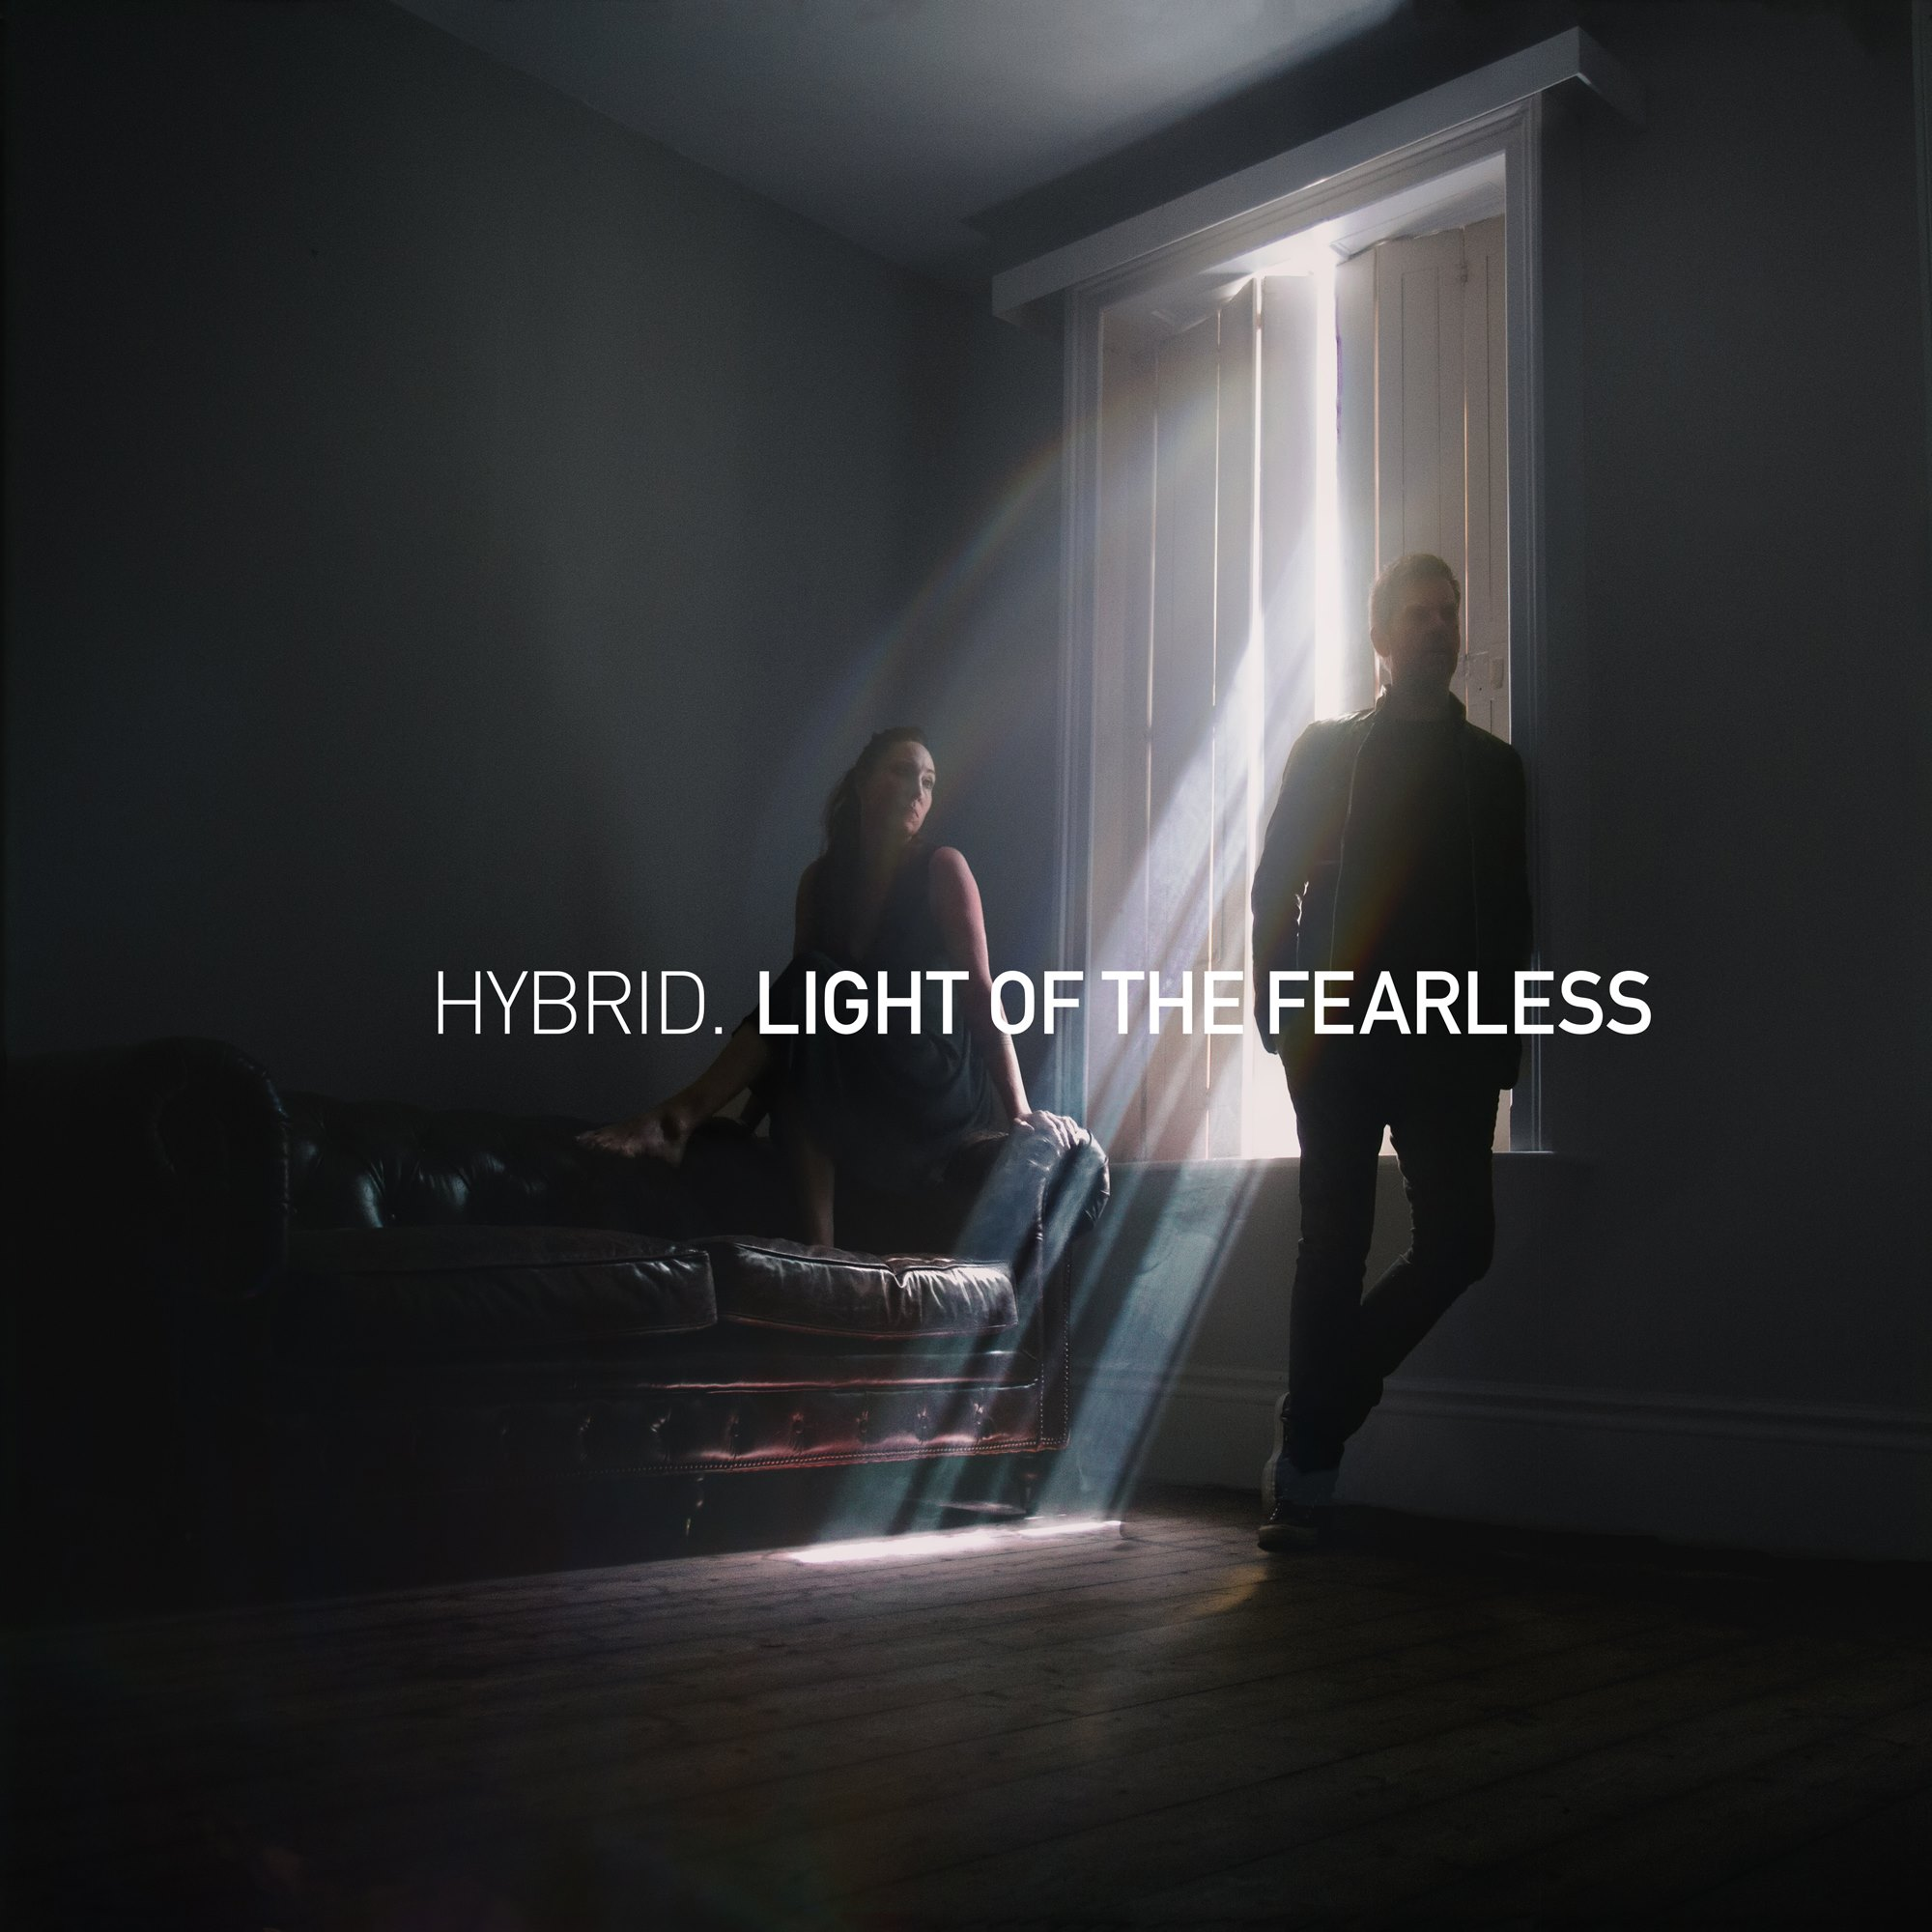 Hybrid-Light Of The Fearless